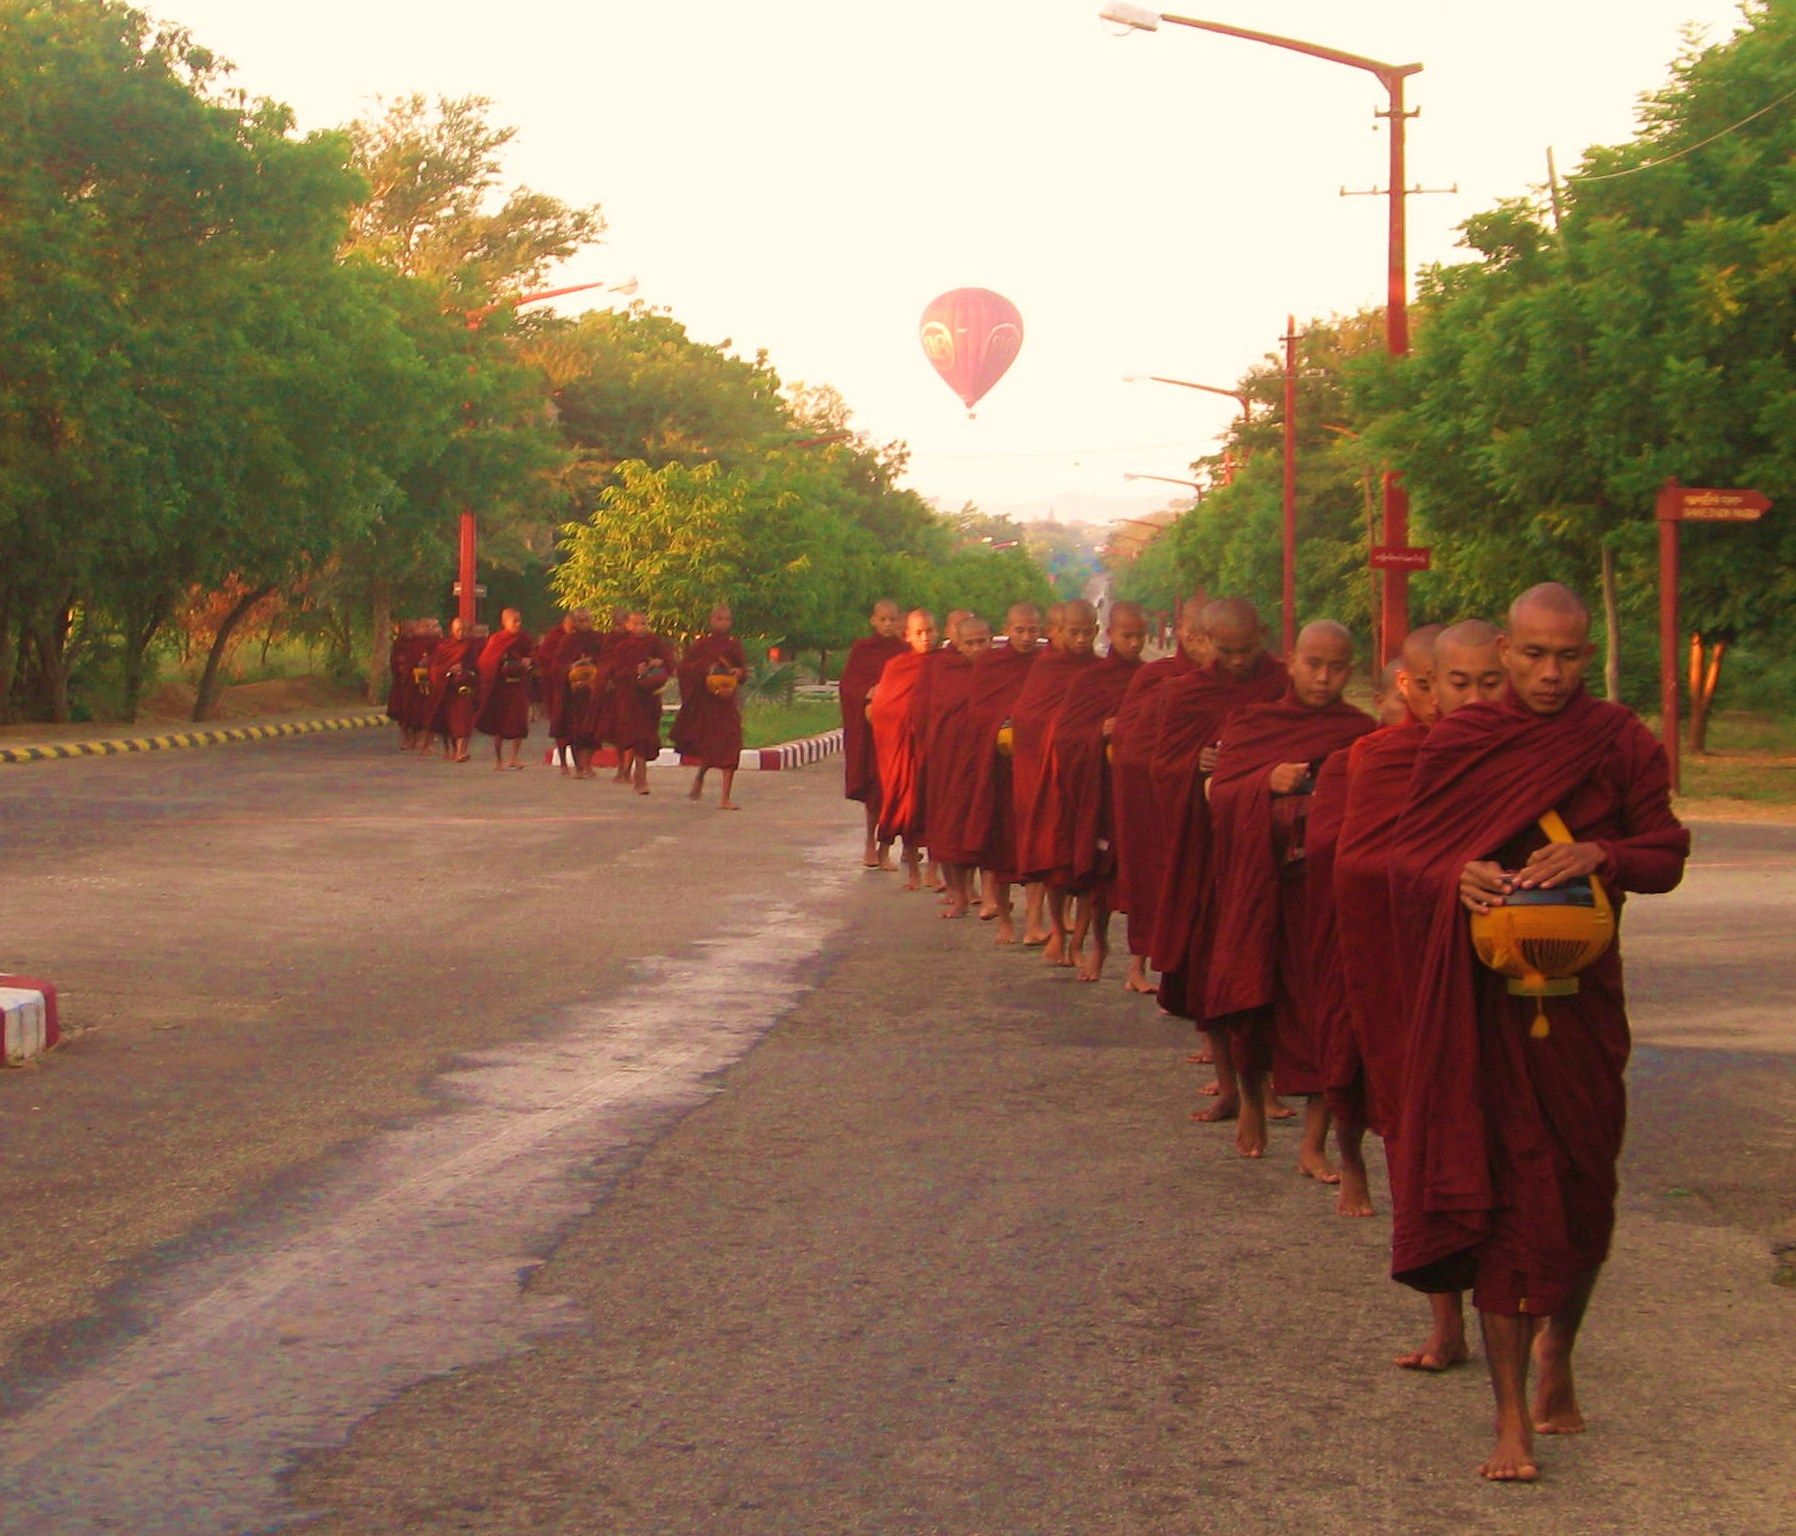 Monks in procession and an air balloon